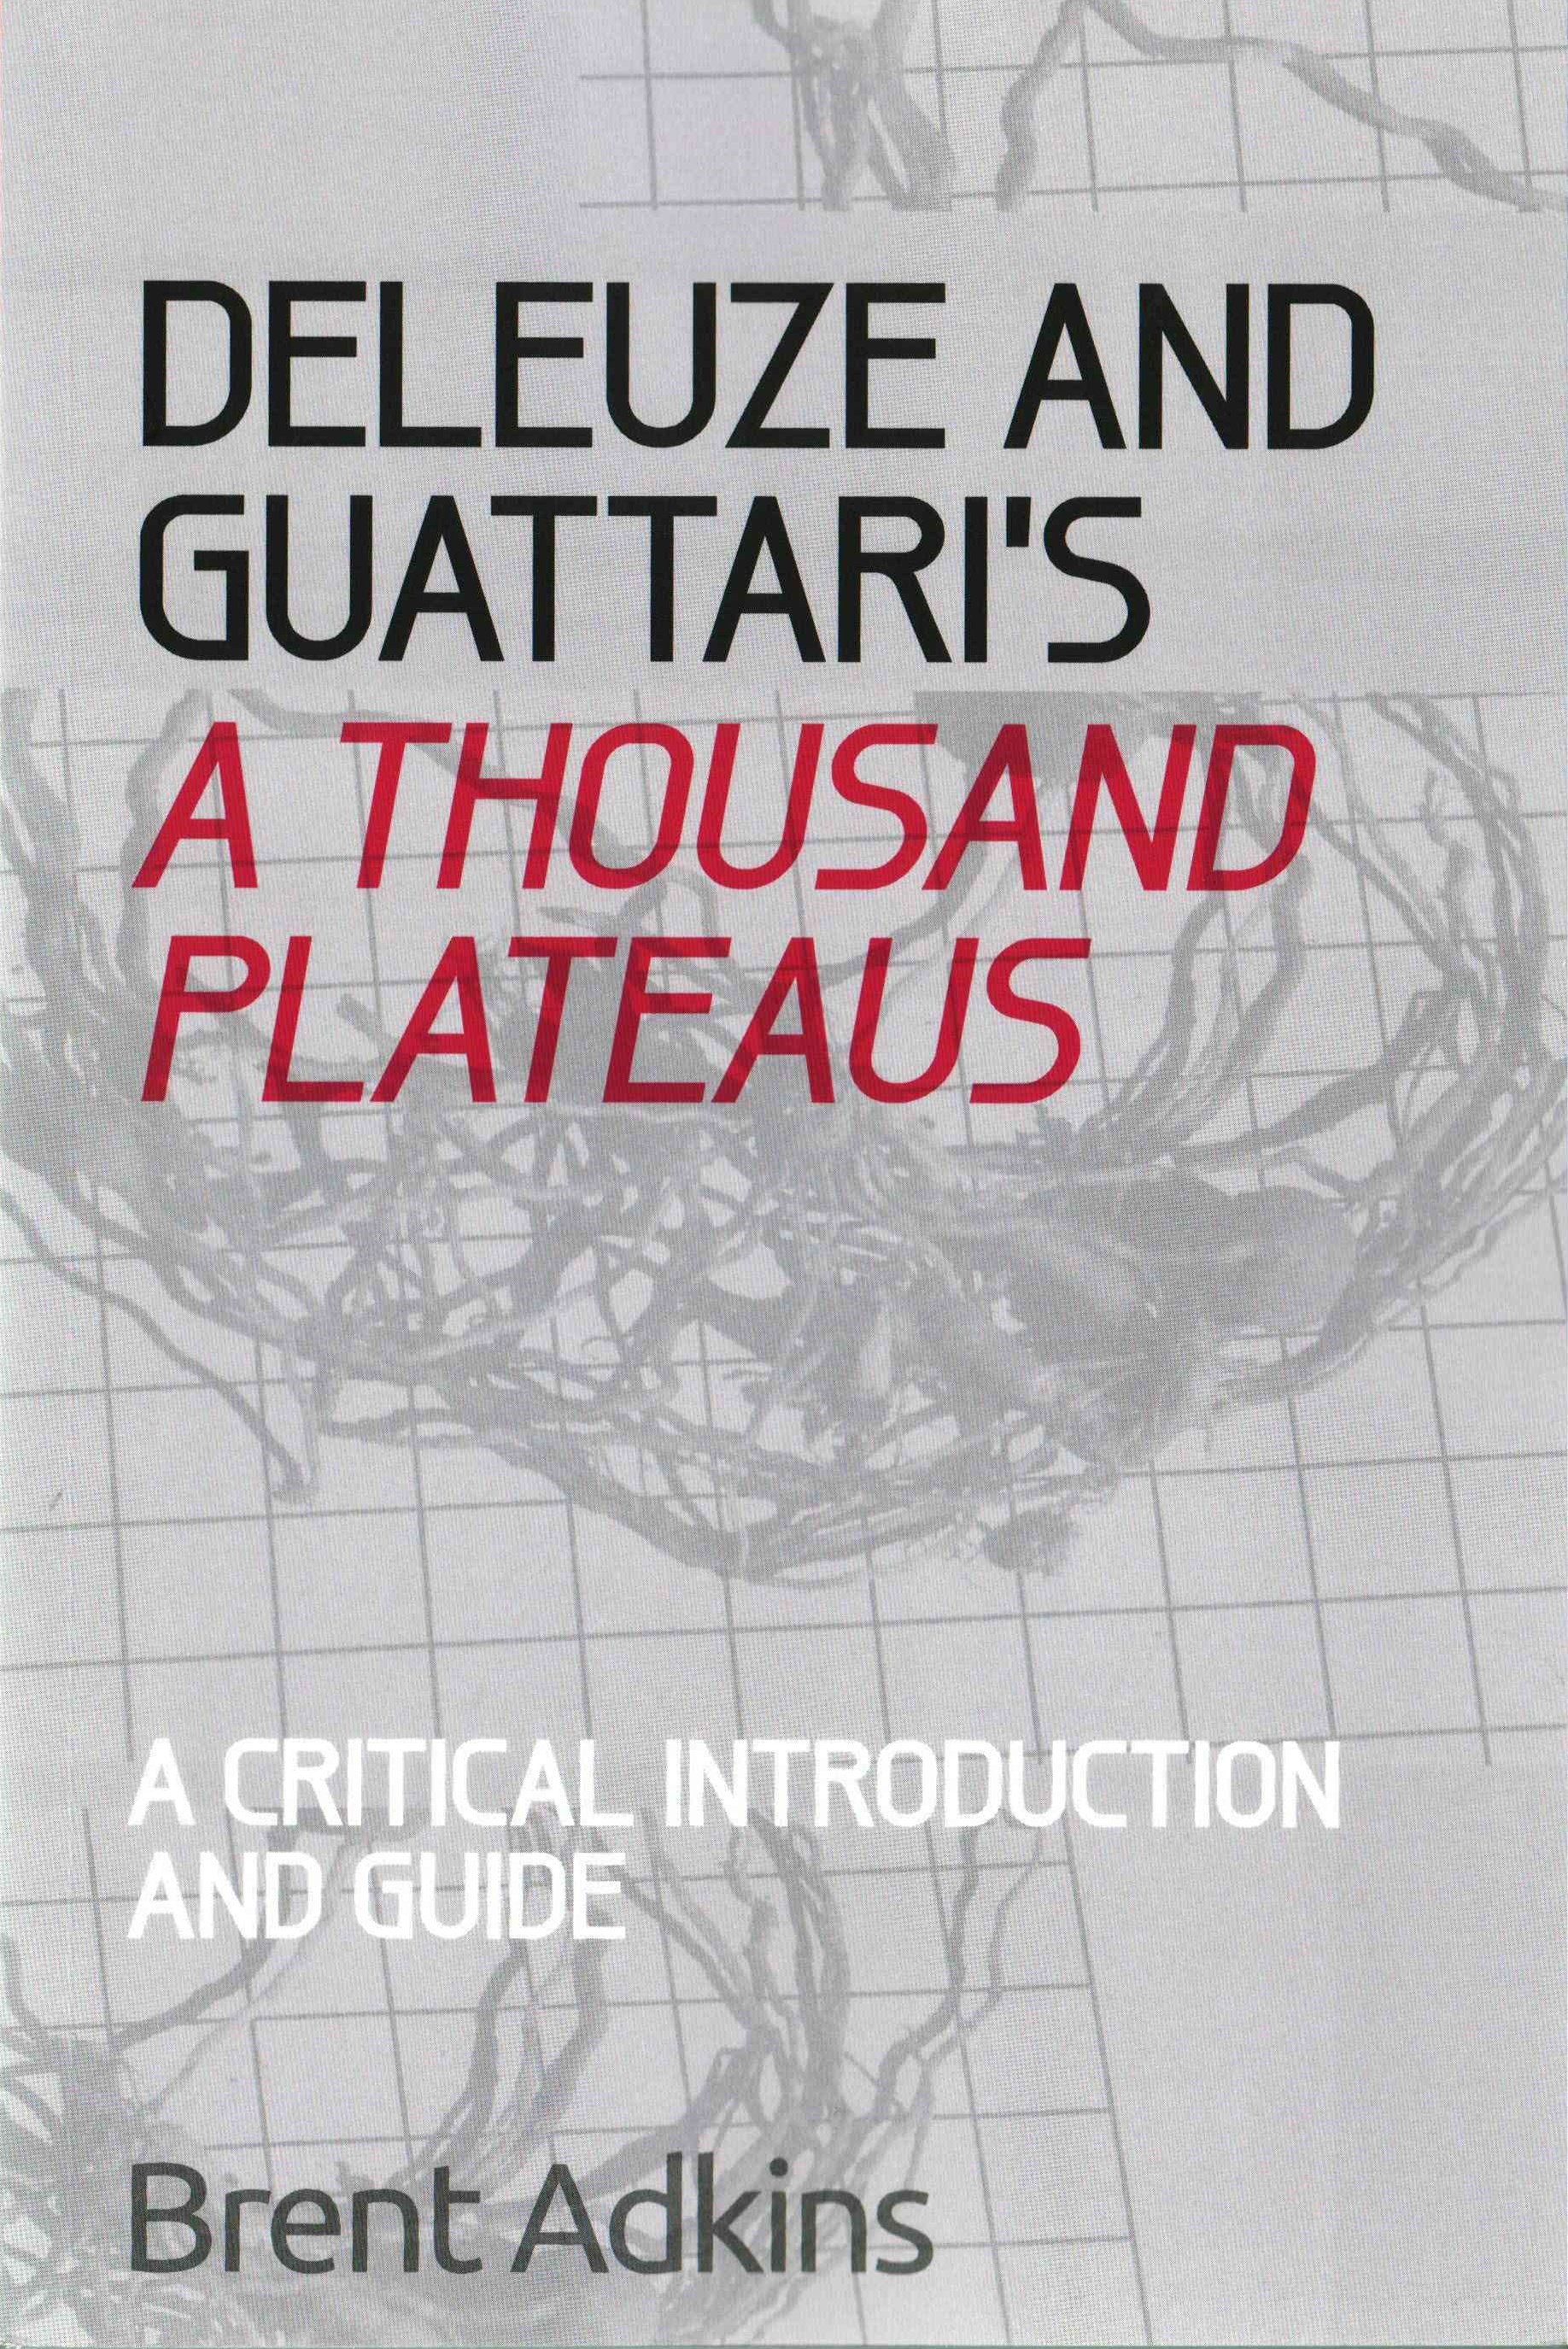 Deleuze and Guattari's A Thousand Plateaus